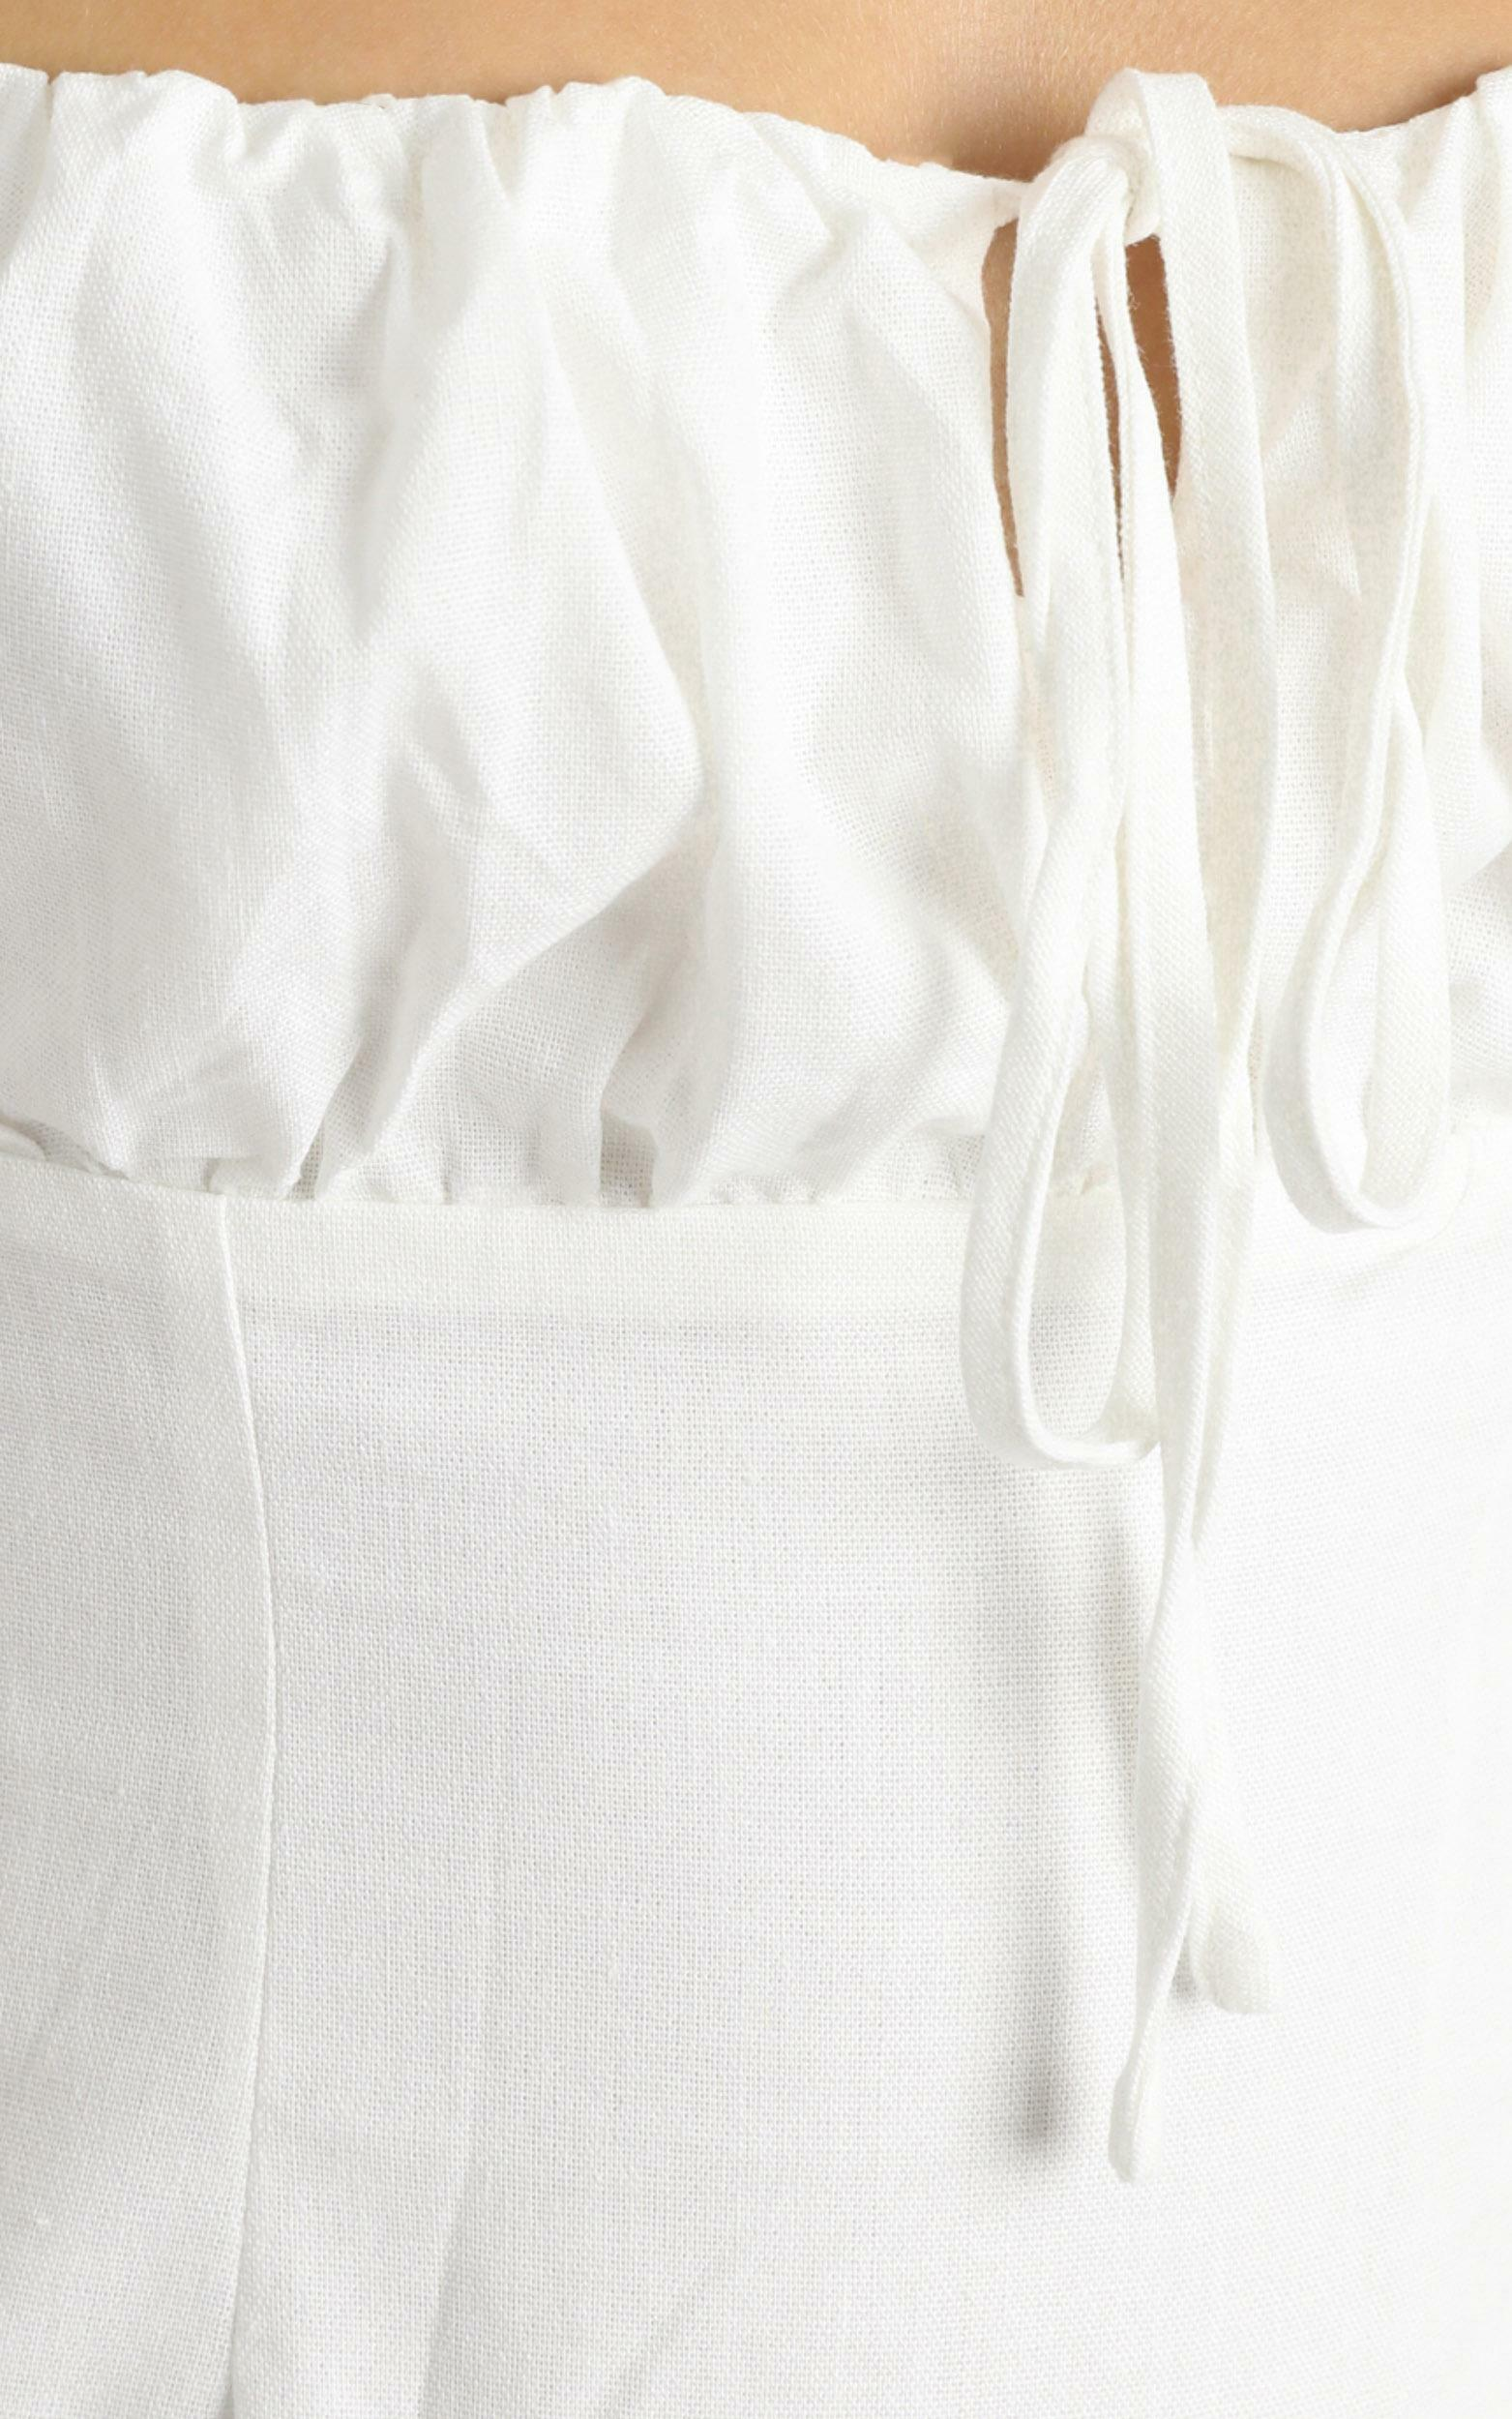 Break Free With Me Dress in white linen look - 20 (XXXXL), White, hi-res image number null